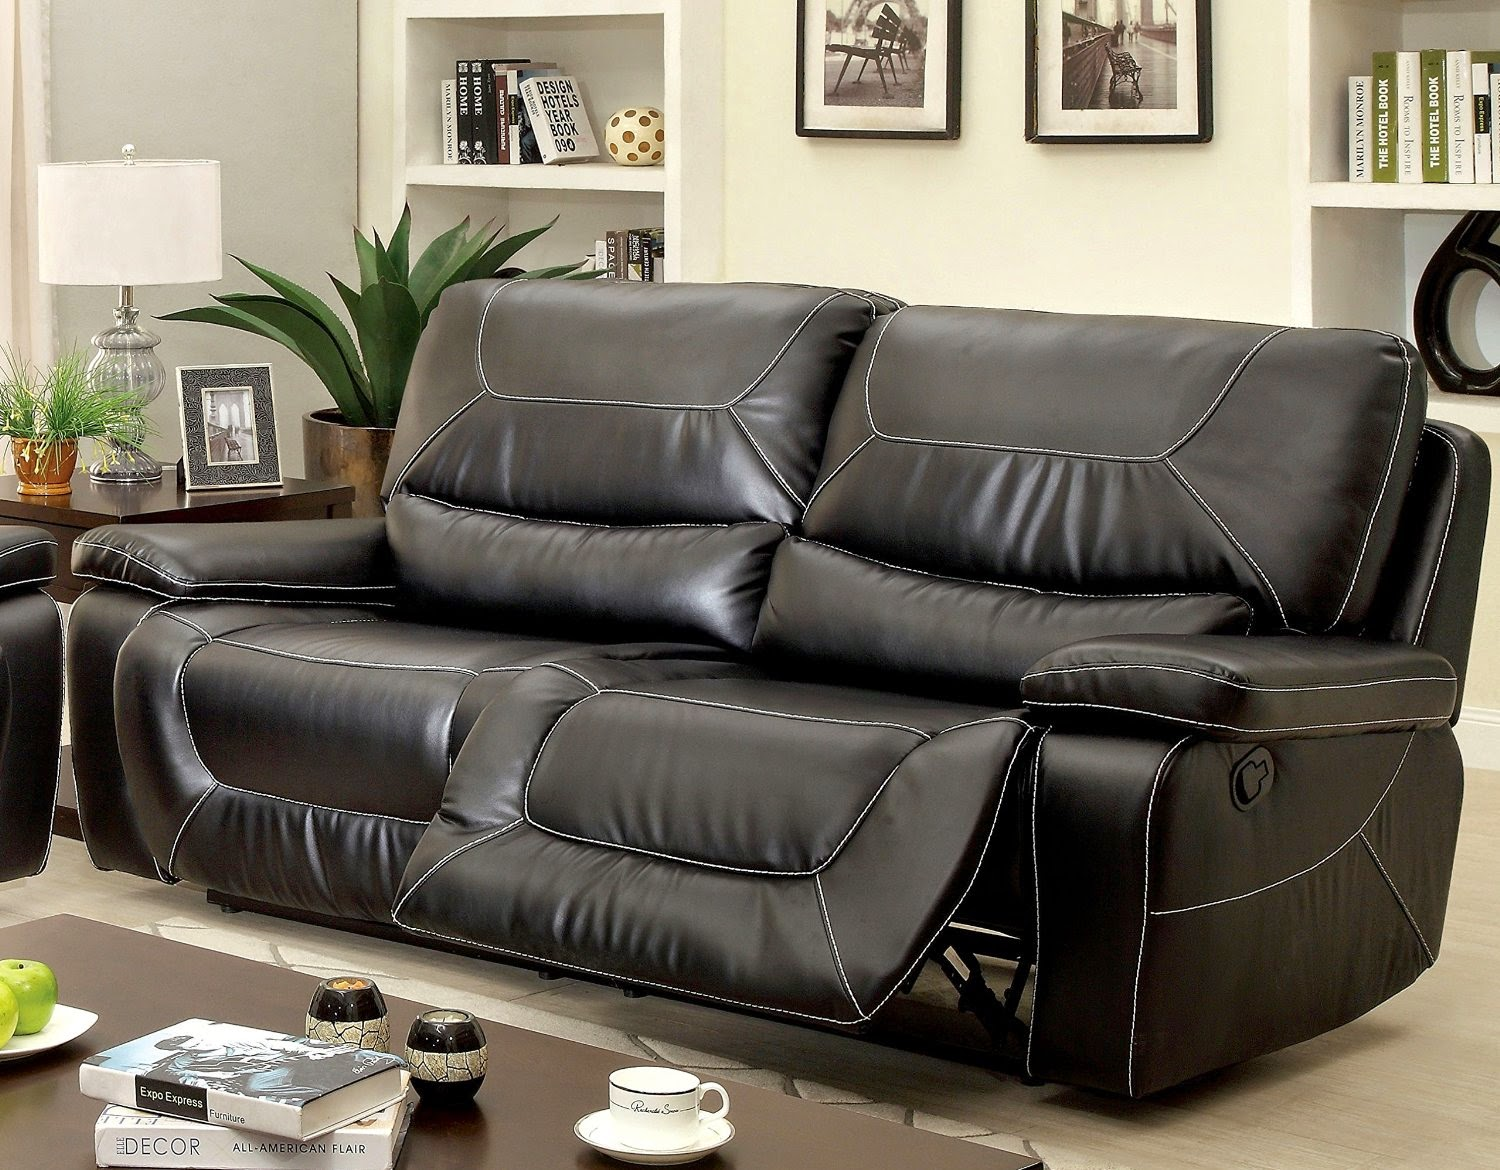 Sofa Recliner Reviews: Black Leather 2 Seater Recliner Sofa